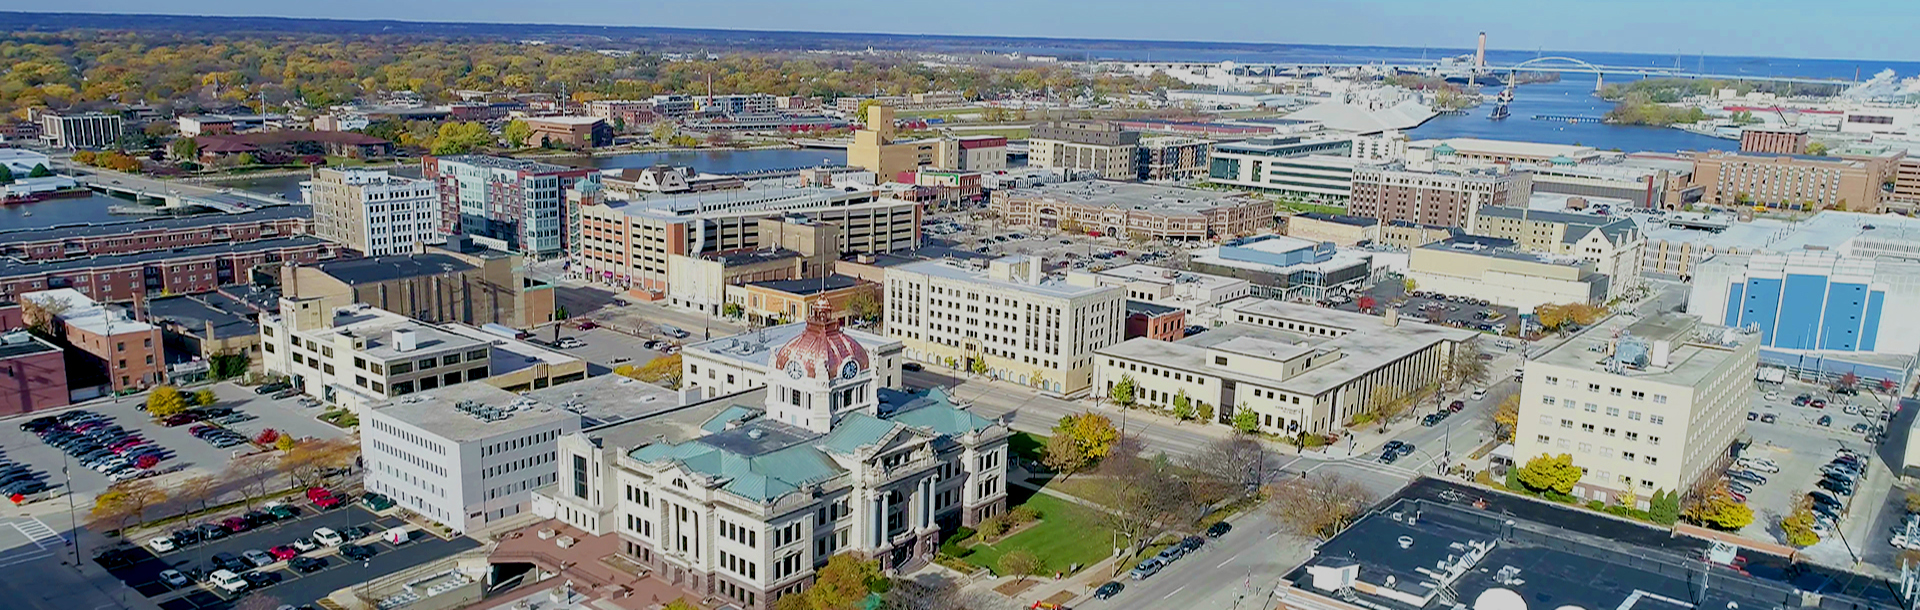 Birdseye View of BC Courthouse in Downtown Green